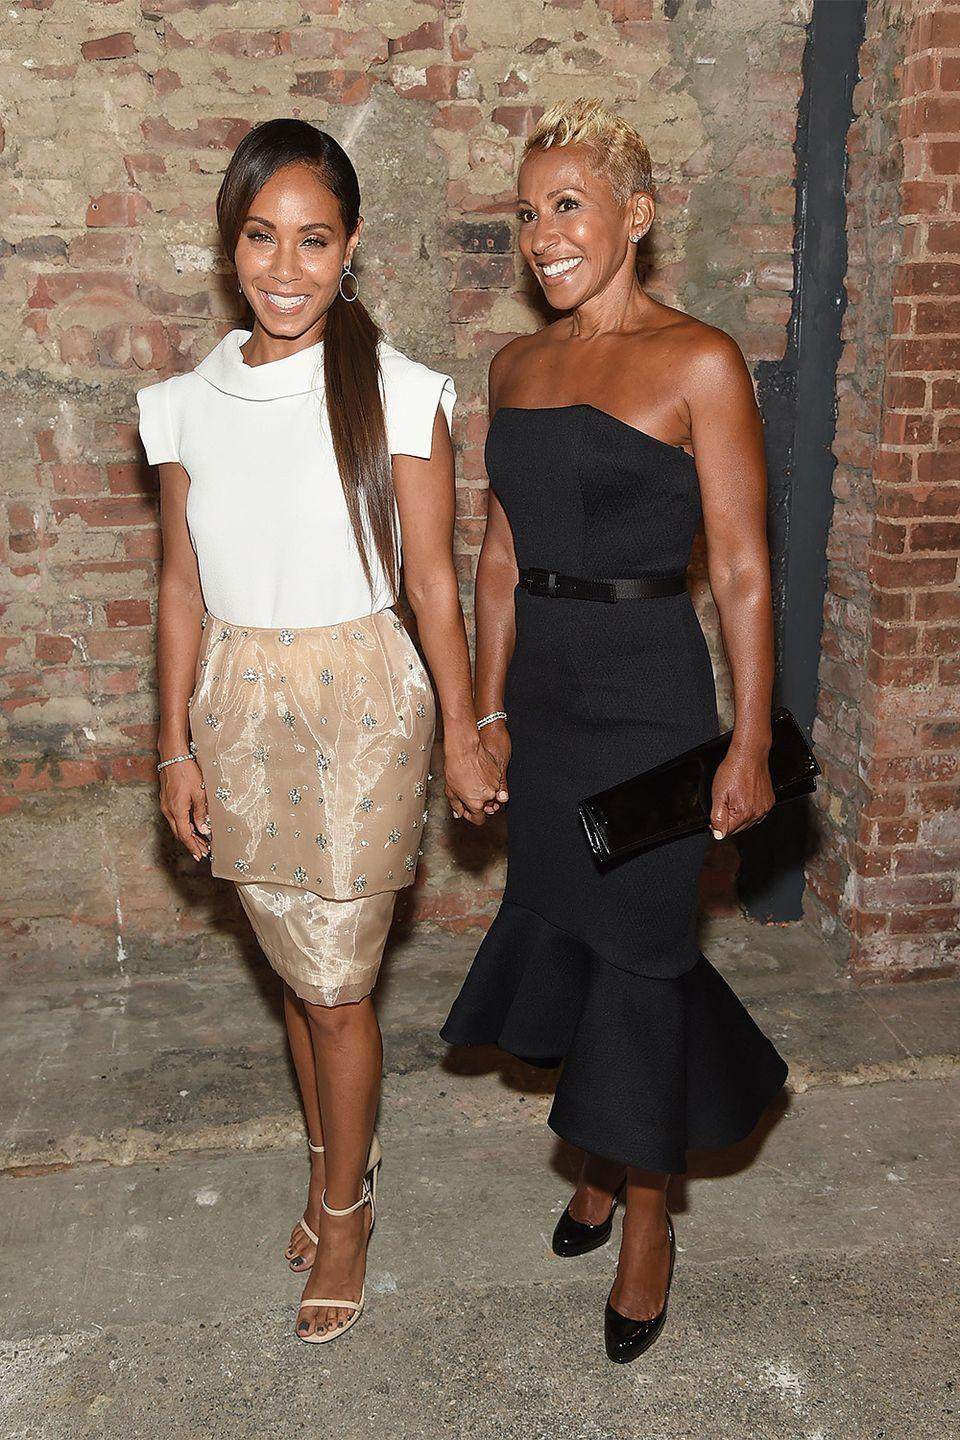 <p>Adrienne Banfield-Jones and daughter Jada Pinkett Smith could easily pass as sisters, if not twins. The two share a luminous smile and bright eyes. </p>